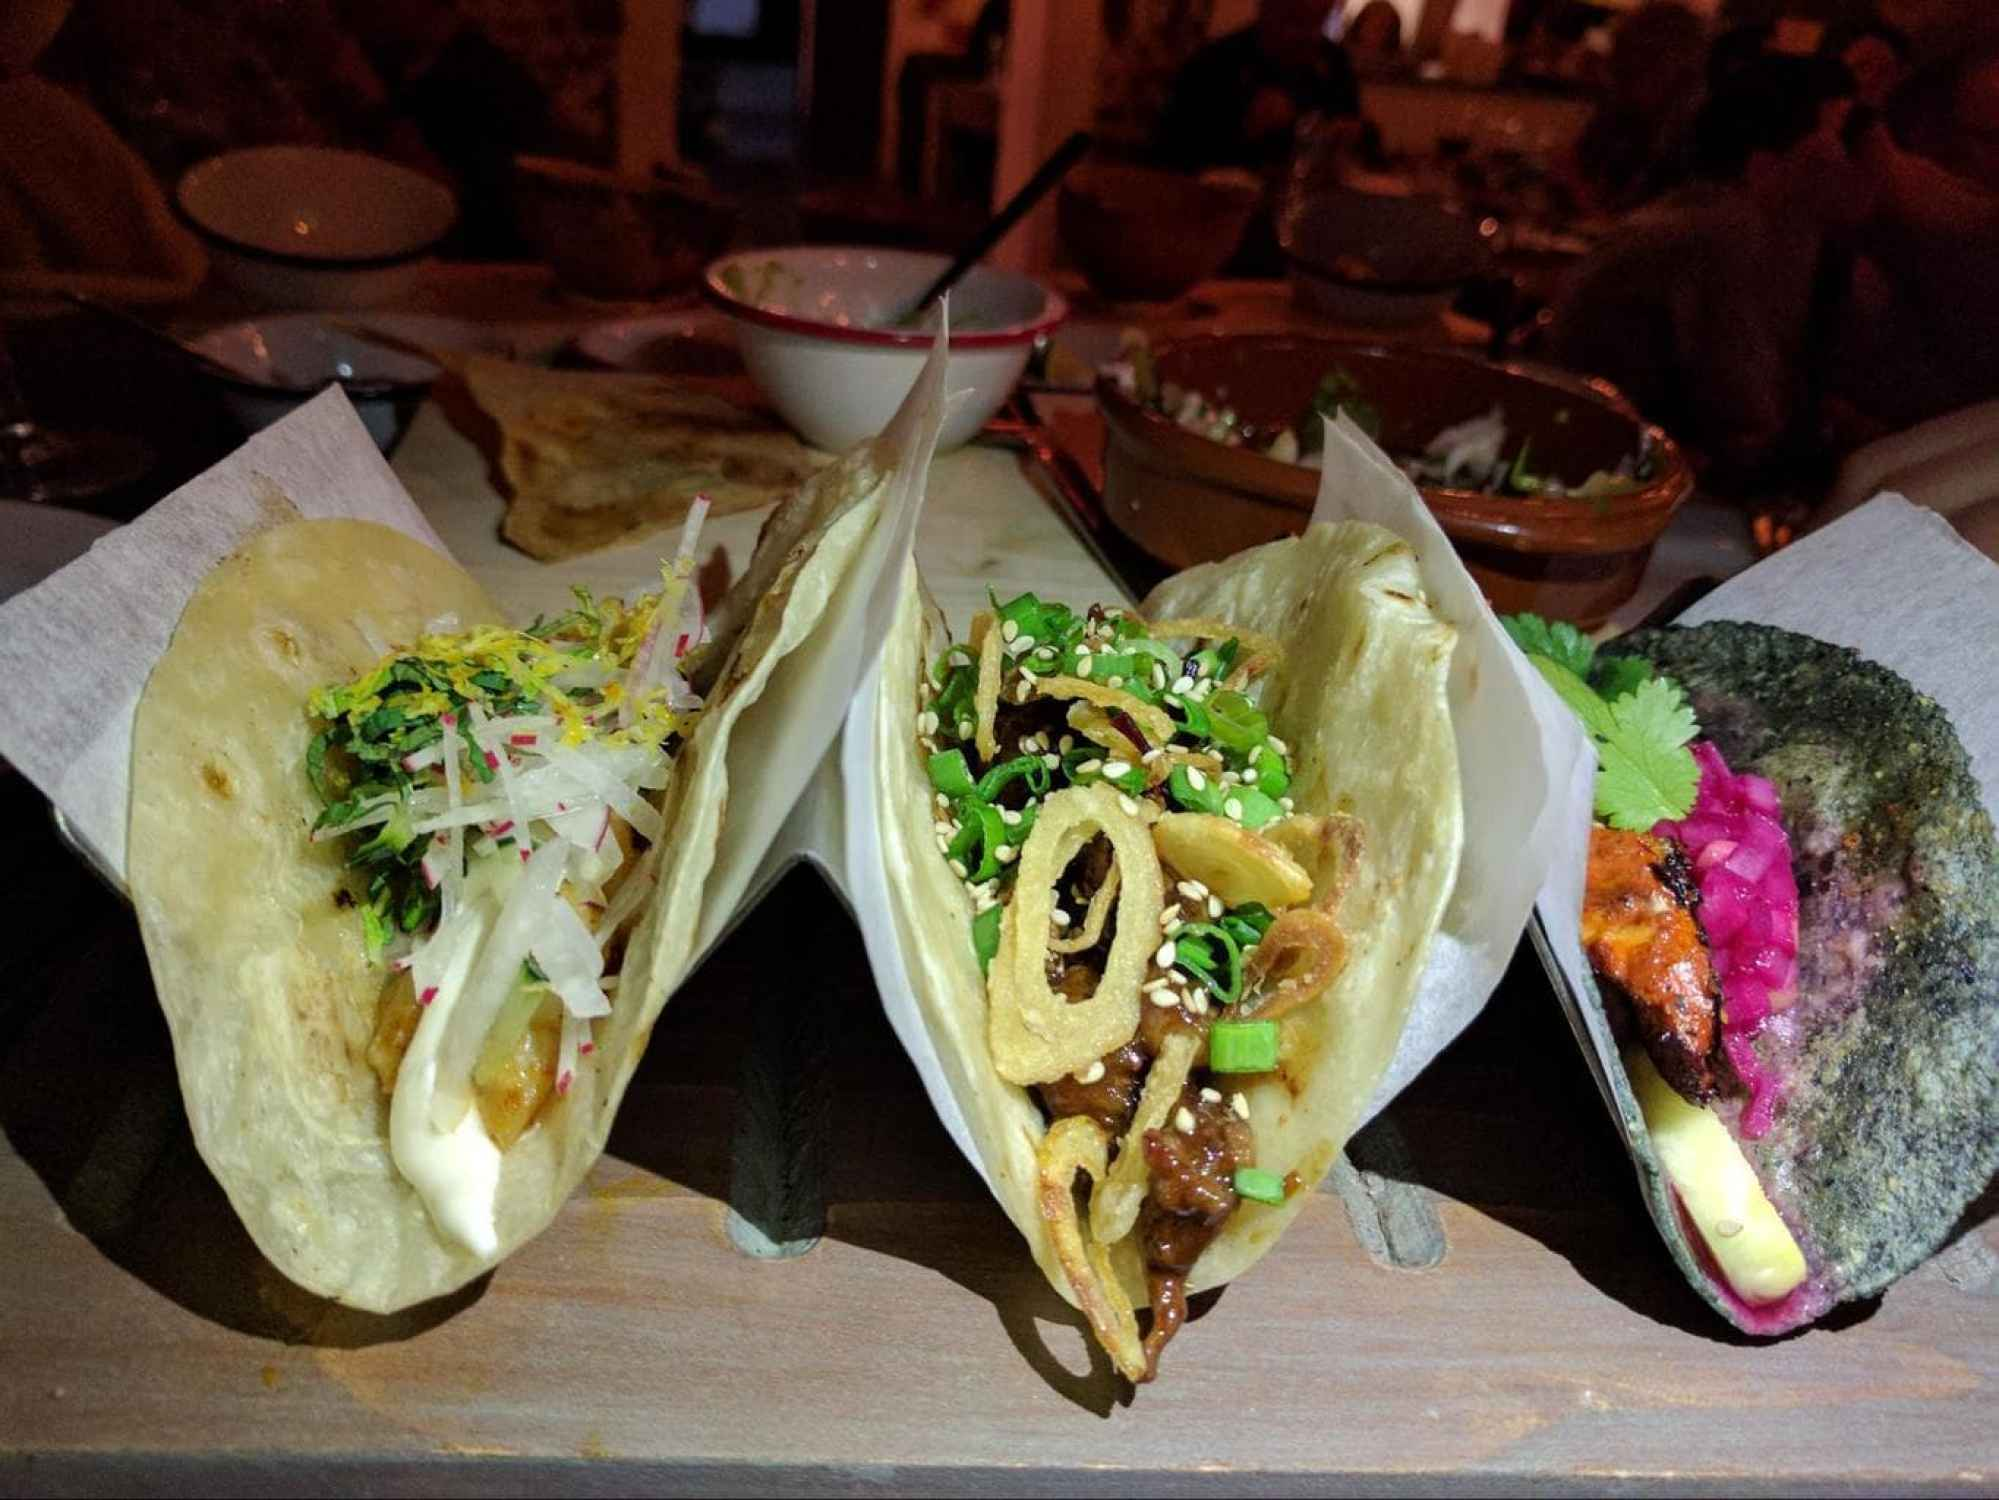 Typical wavy tray to serve tacos